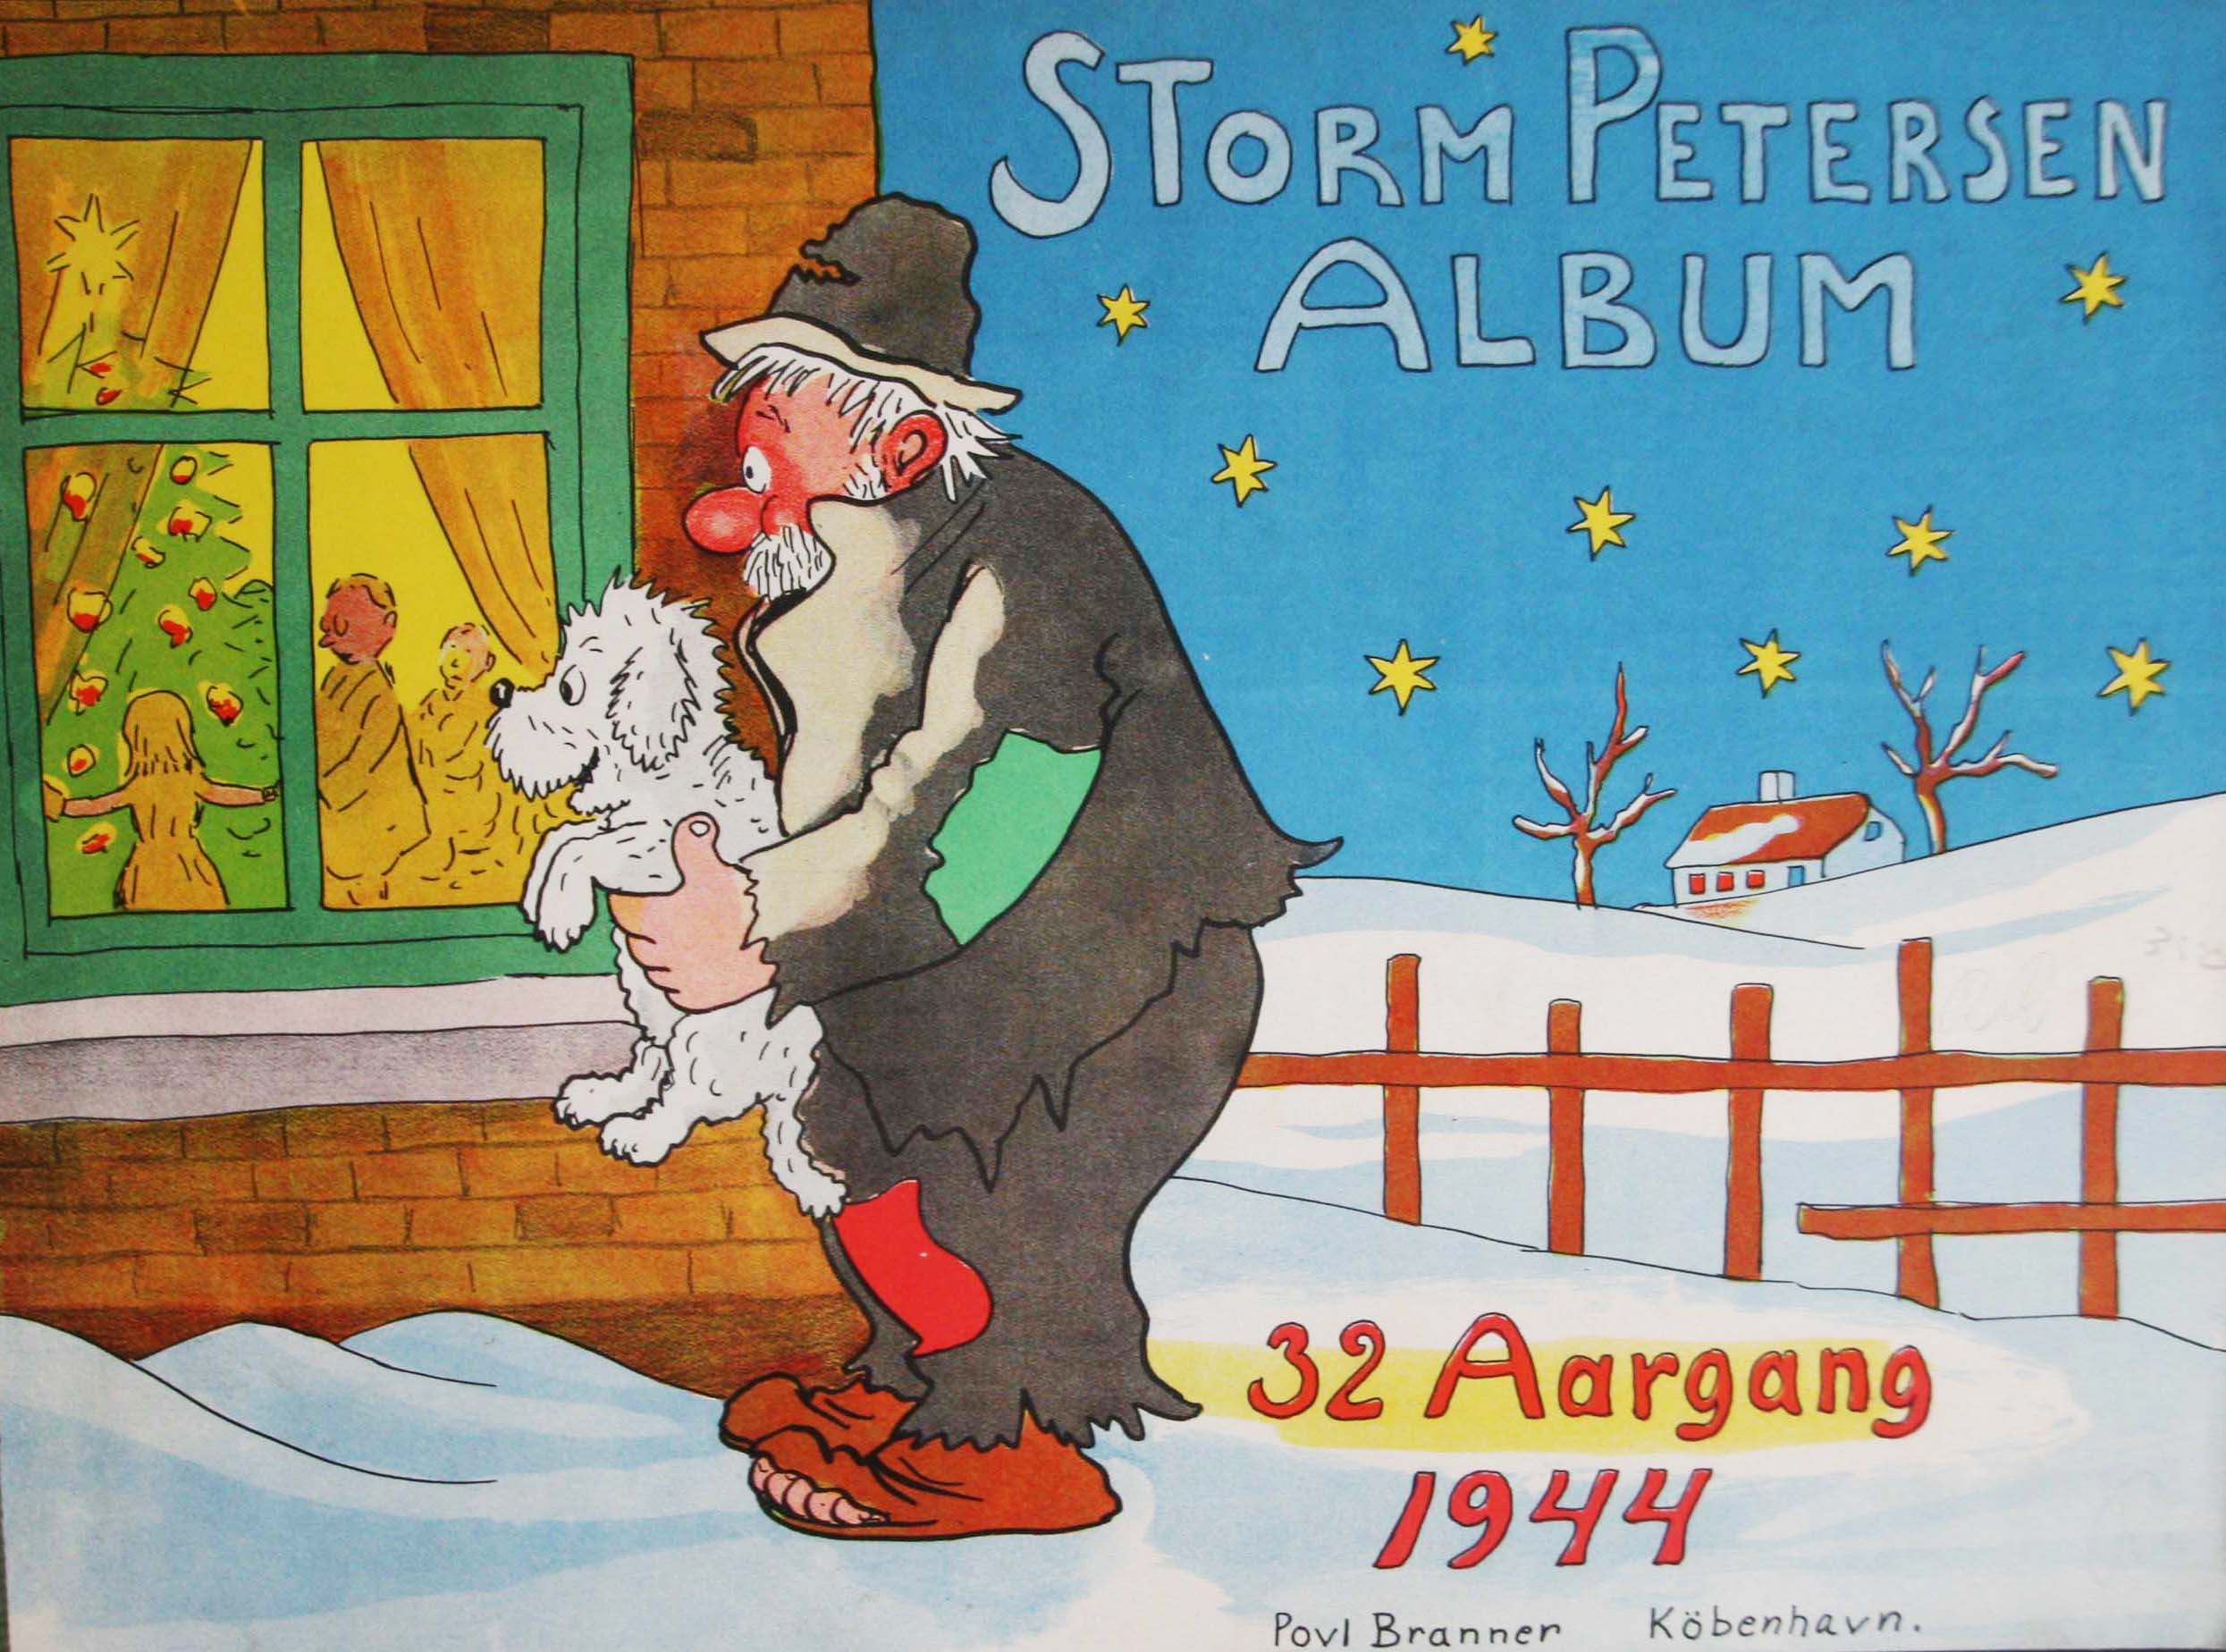 Robert Storm Petersen Storm P. Album 1944